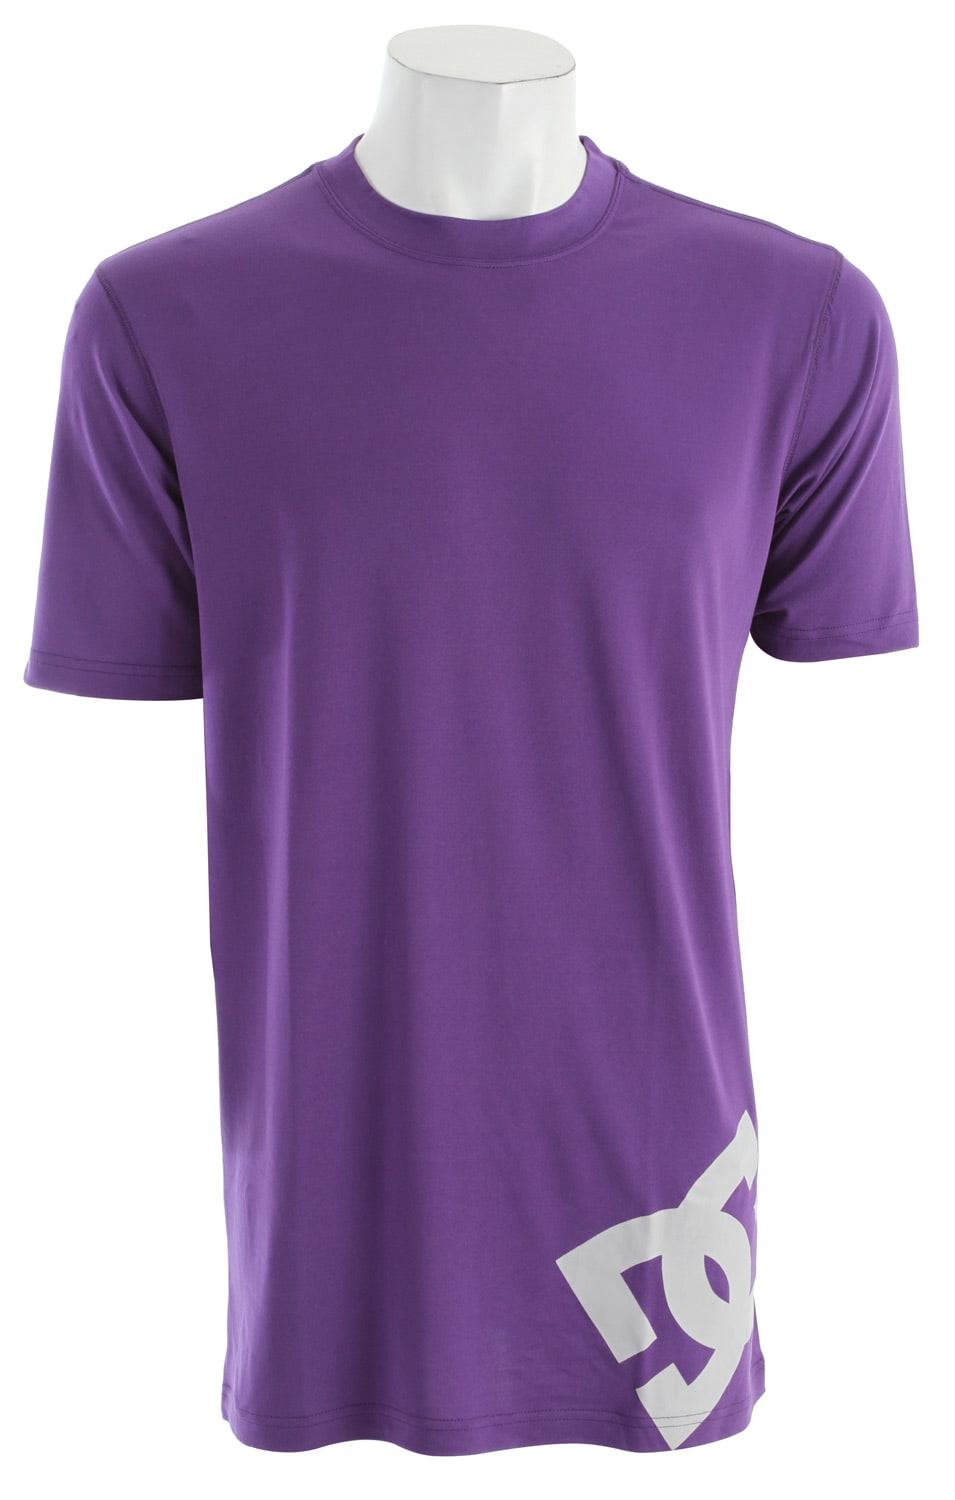 Shop for DC Aravis Baselayer Top Royal Purple - Men's